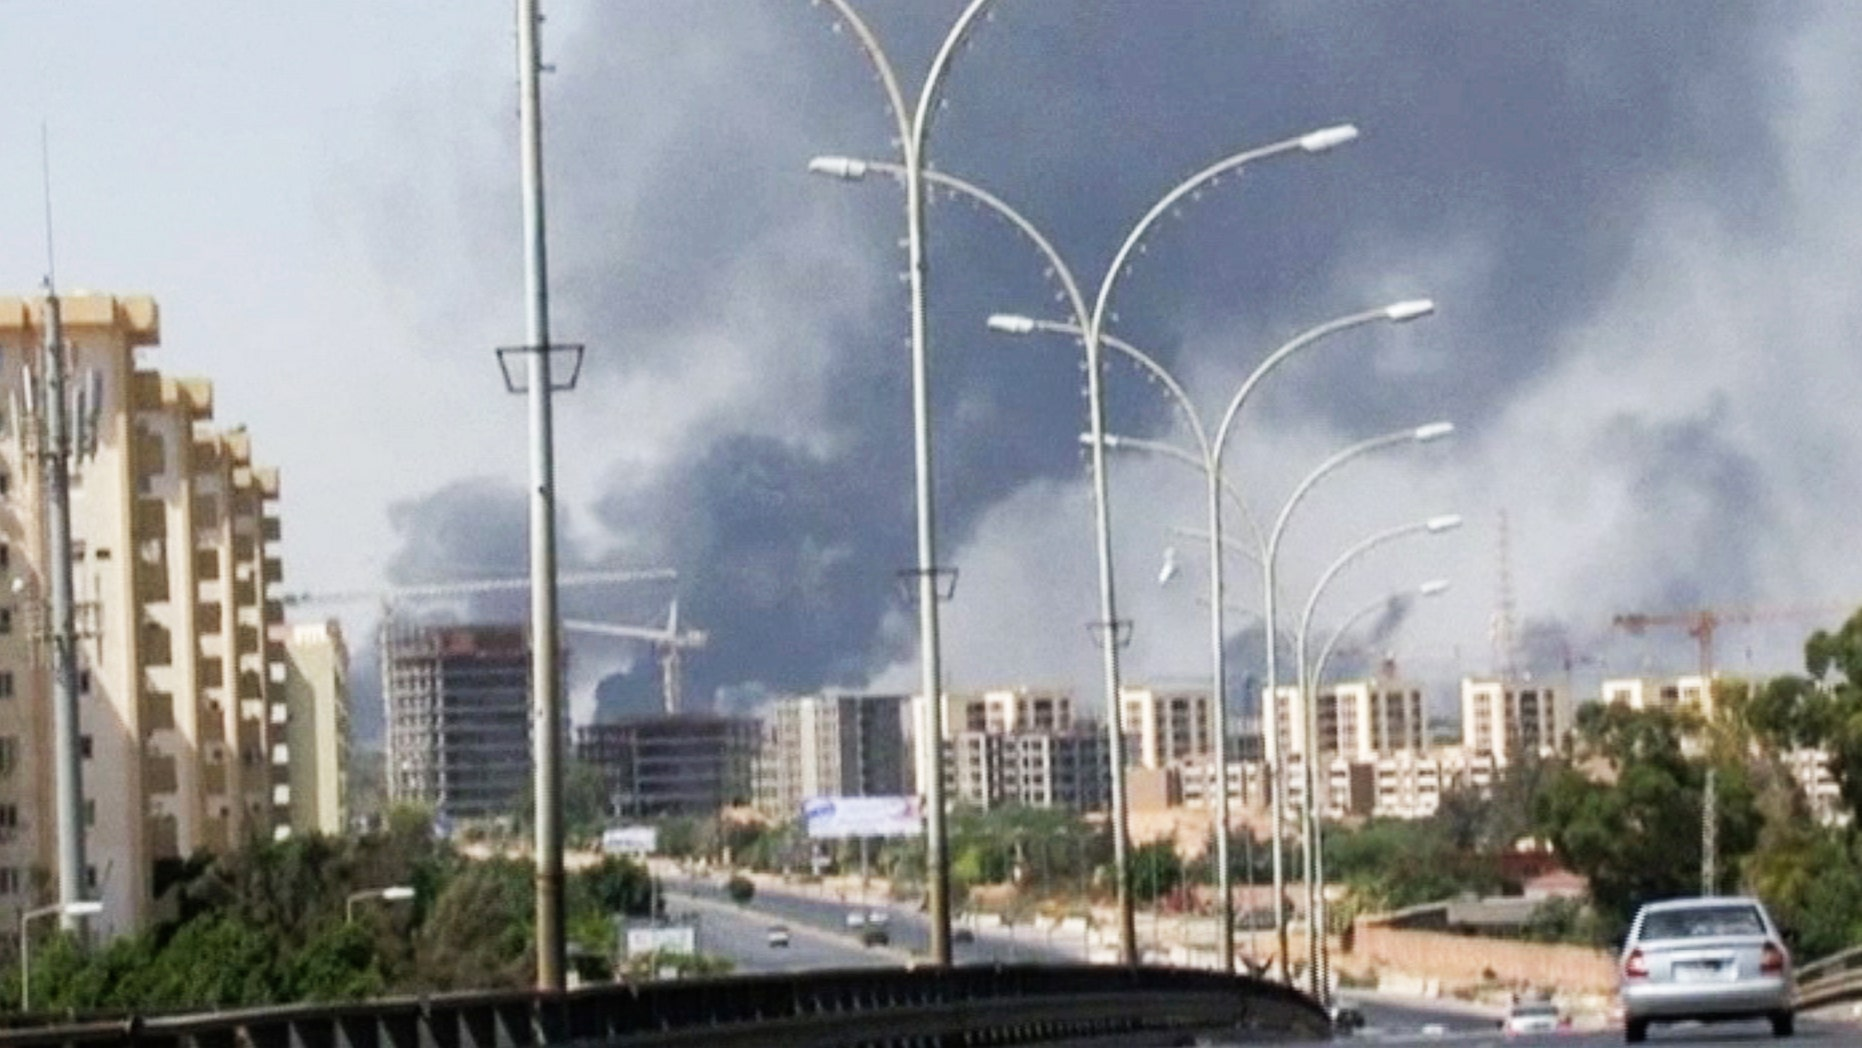 July 13, 2014 - Smoke rises from the direction of Tripoli airport in  Libya.  Rival militias battled for control of the international airport, as gunfire and explosions echoed through the city and airlines canceled some international flights.